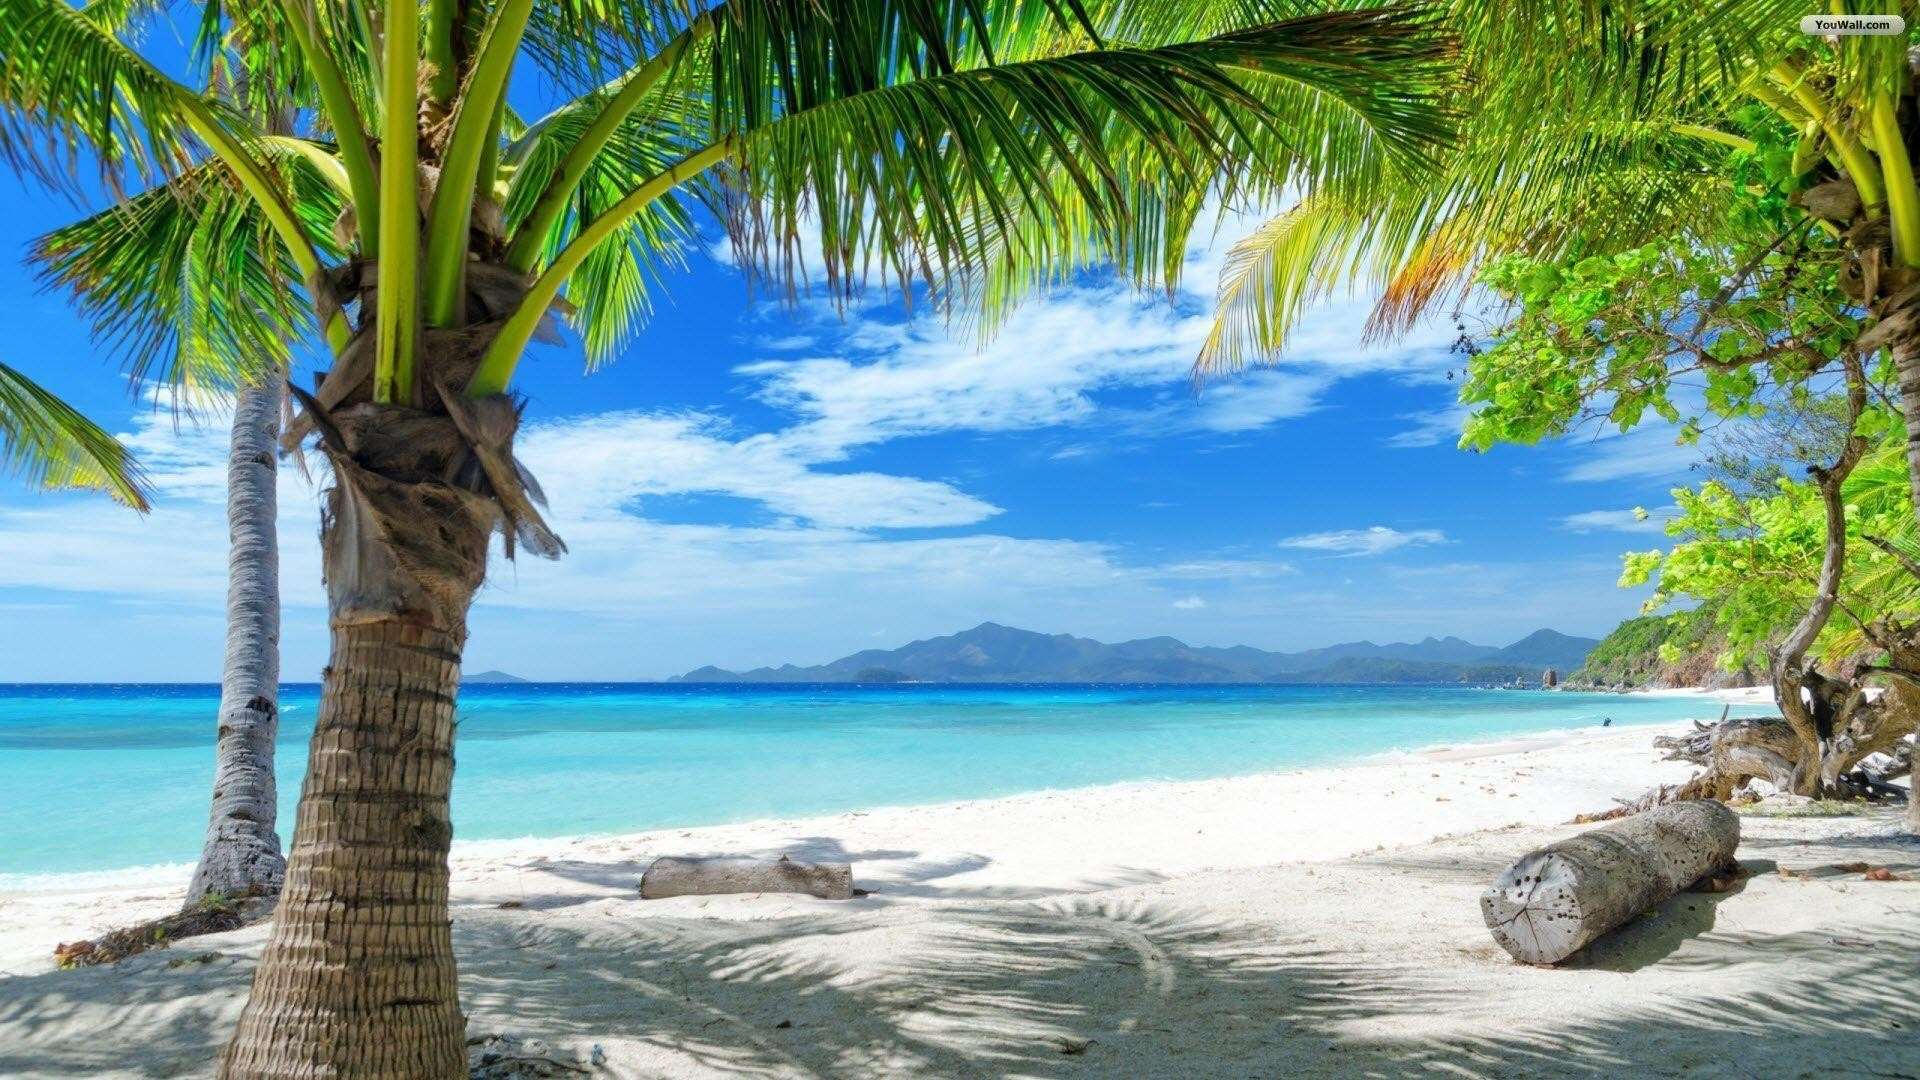 Beach paradise wallpapers 57 background pictures - Paradise pictures backgrounds ...